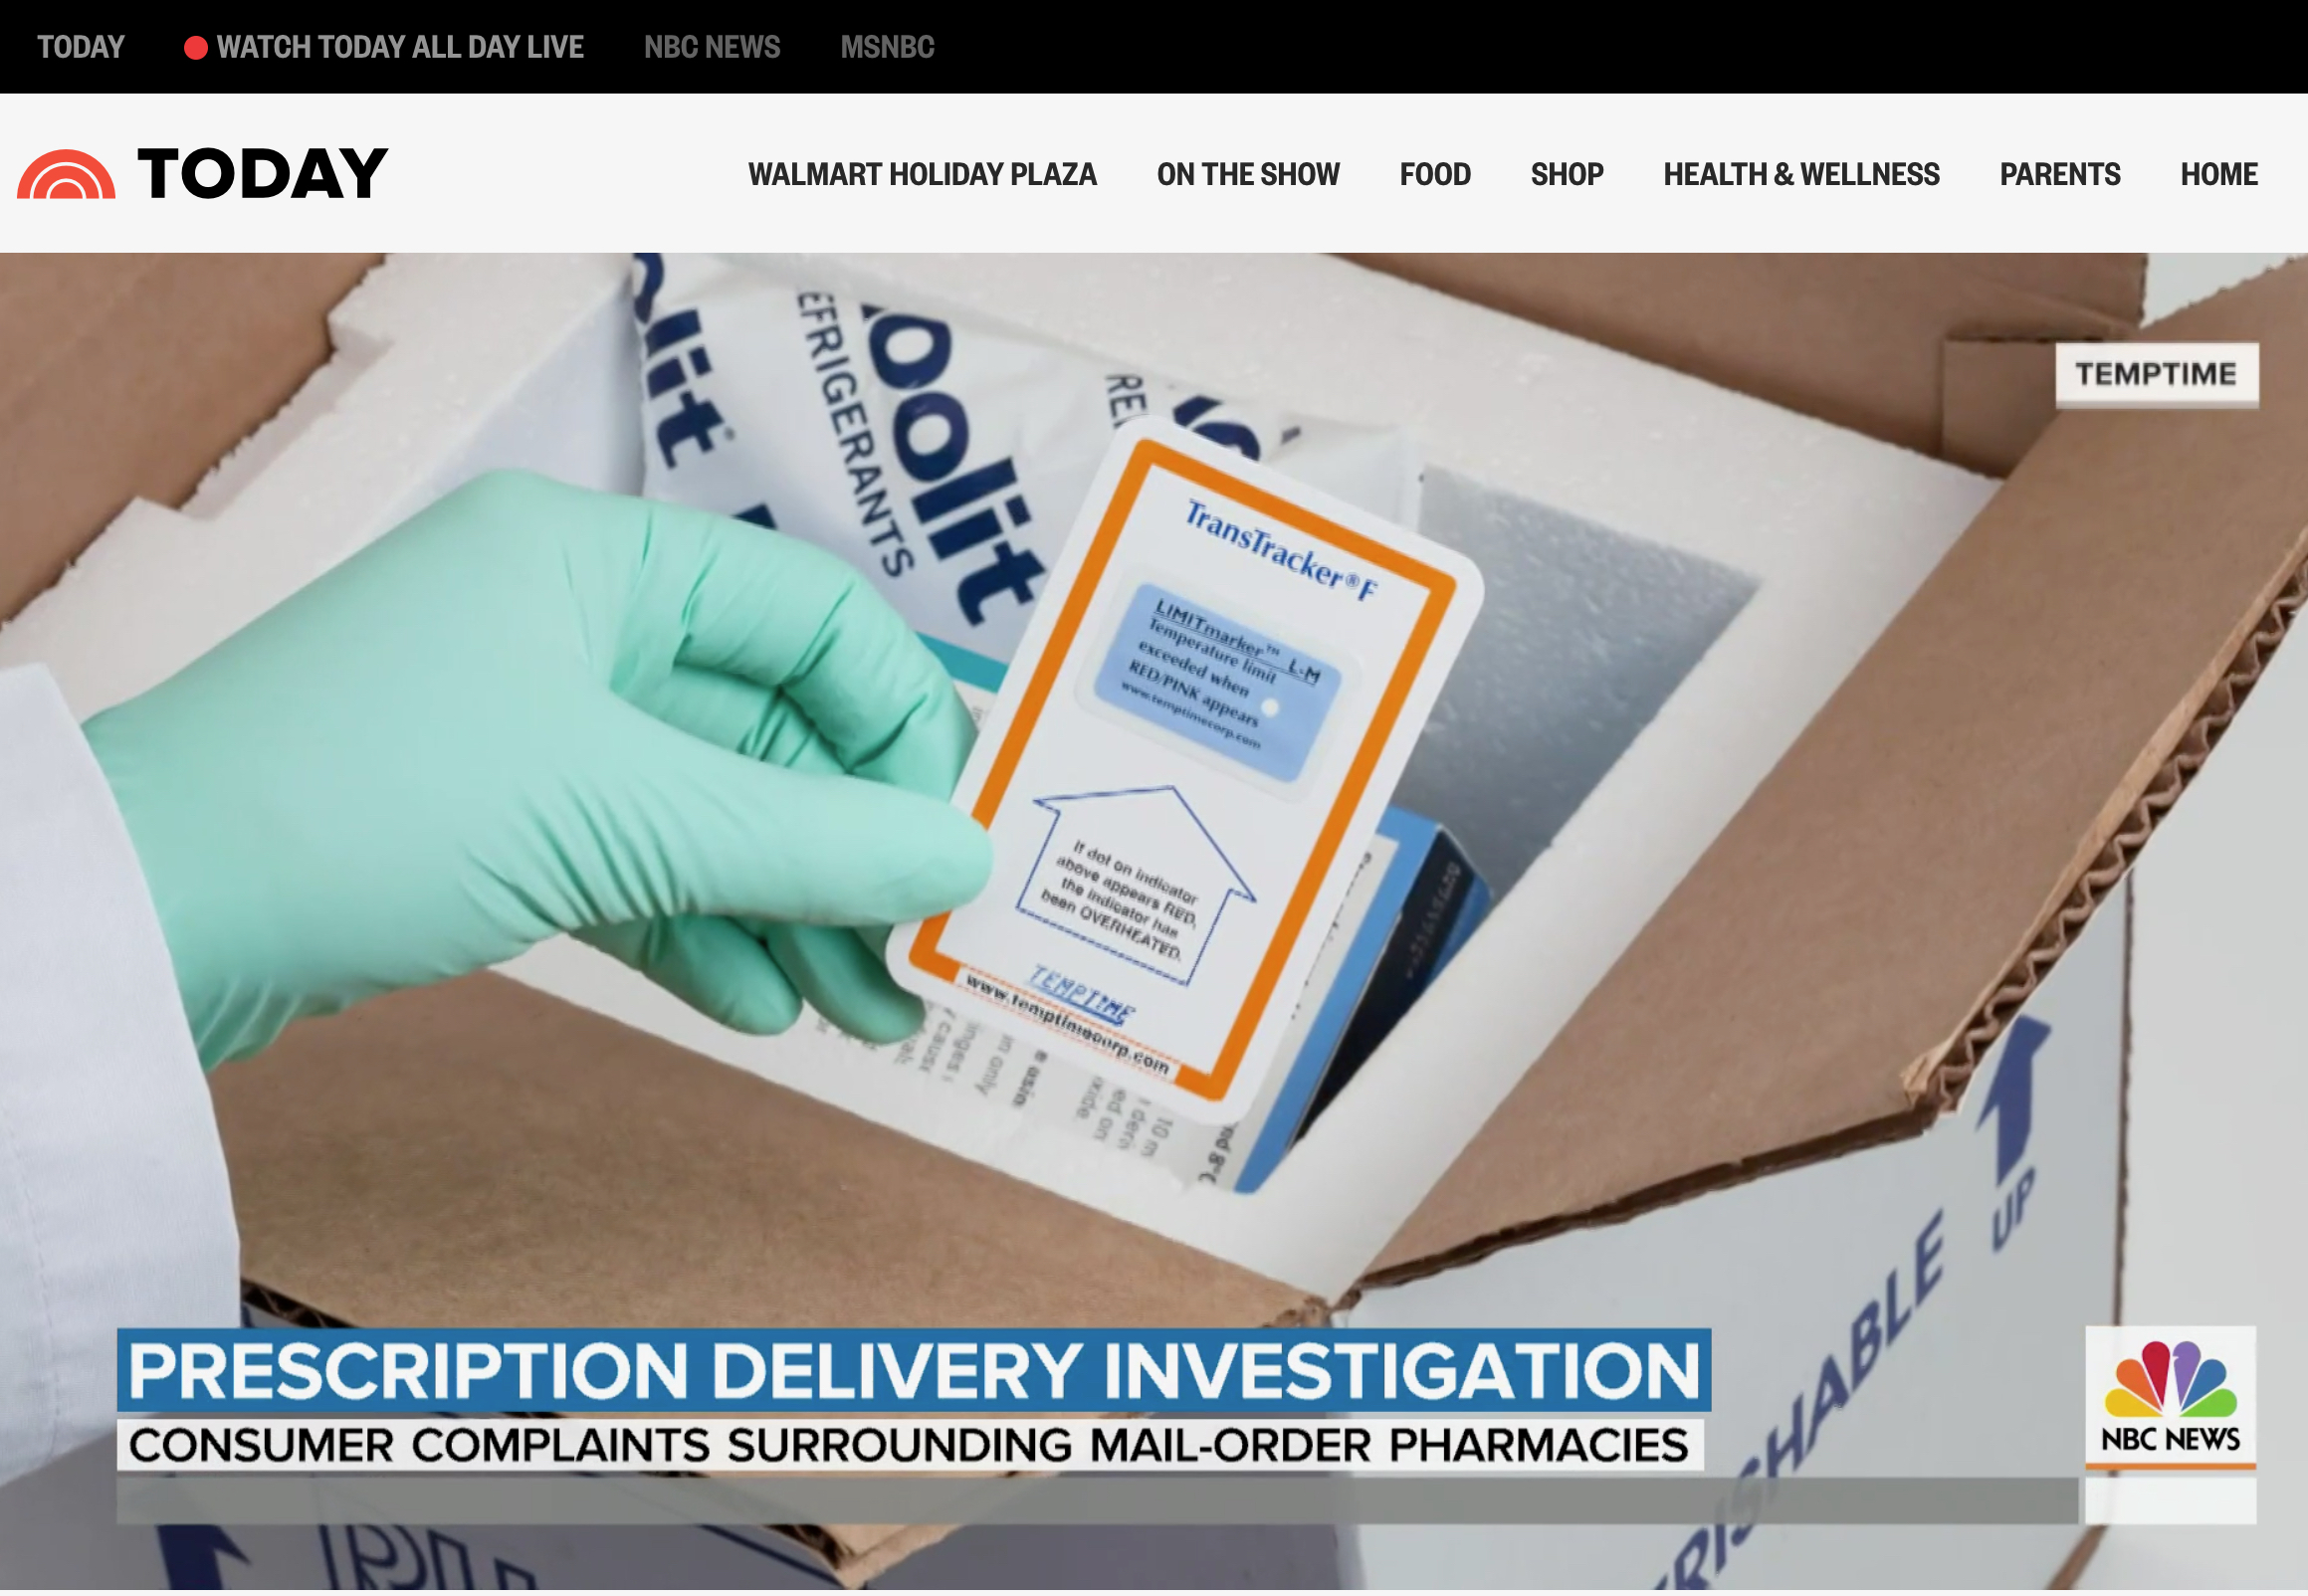 NBC News story investigates safety of mail-order medication